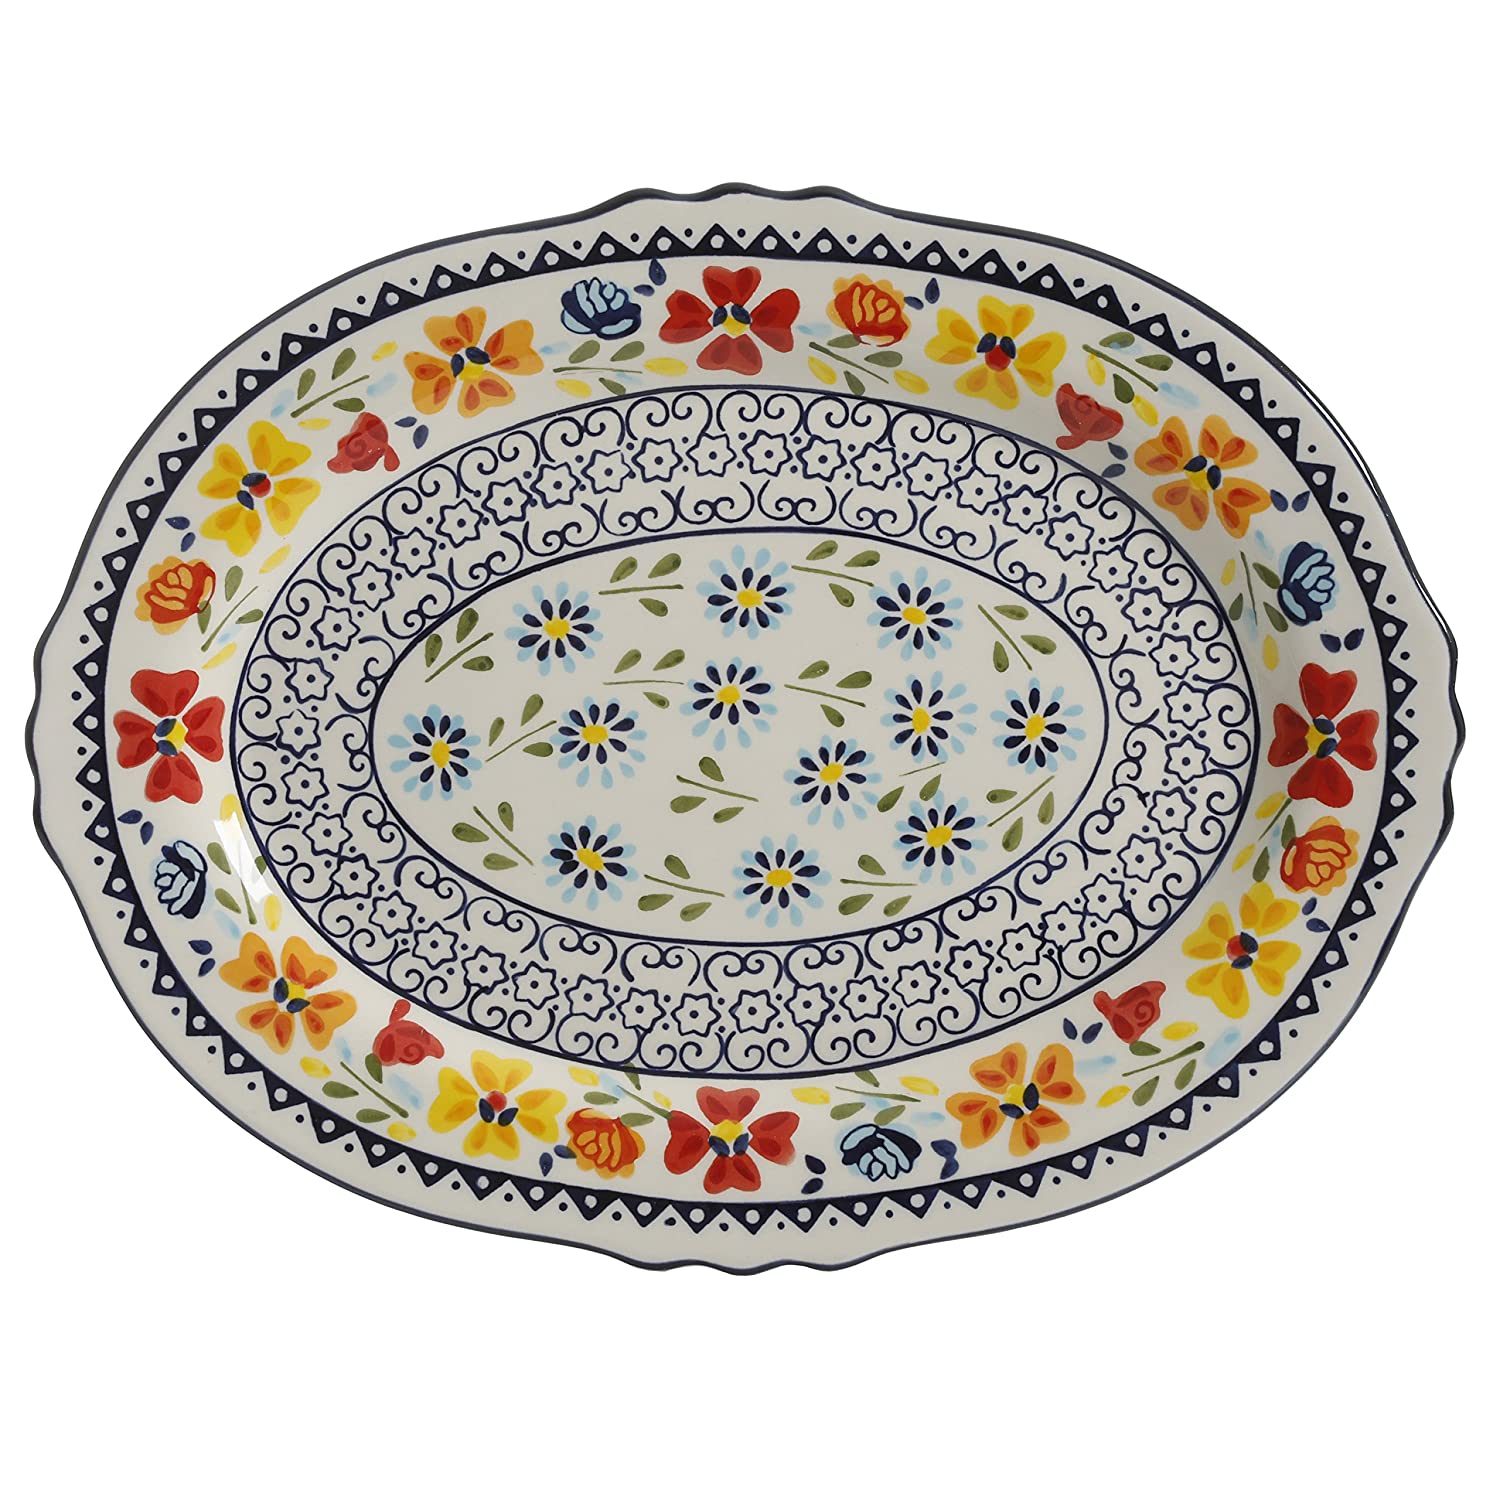 """Gibson Elite 98760.01R Luxembourg Handpainted 14"""" Serving Platter, Blue and Cream w/Floral Designs"""